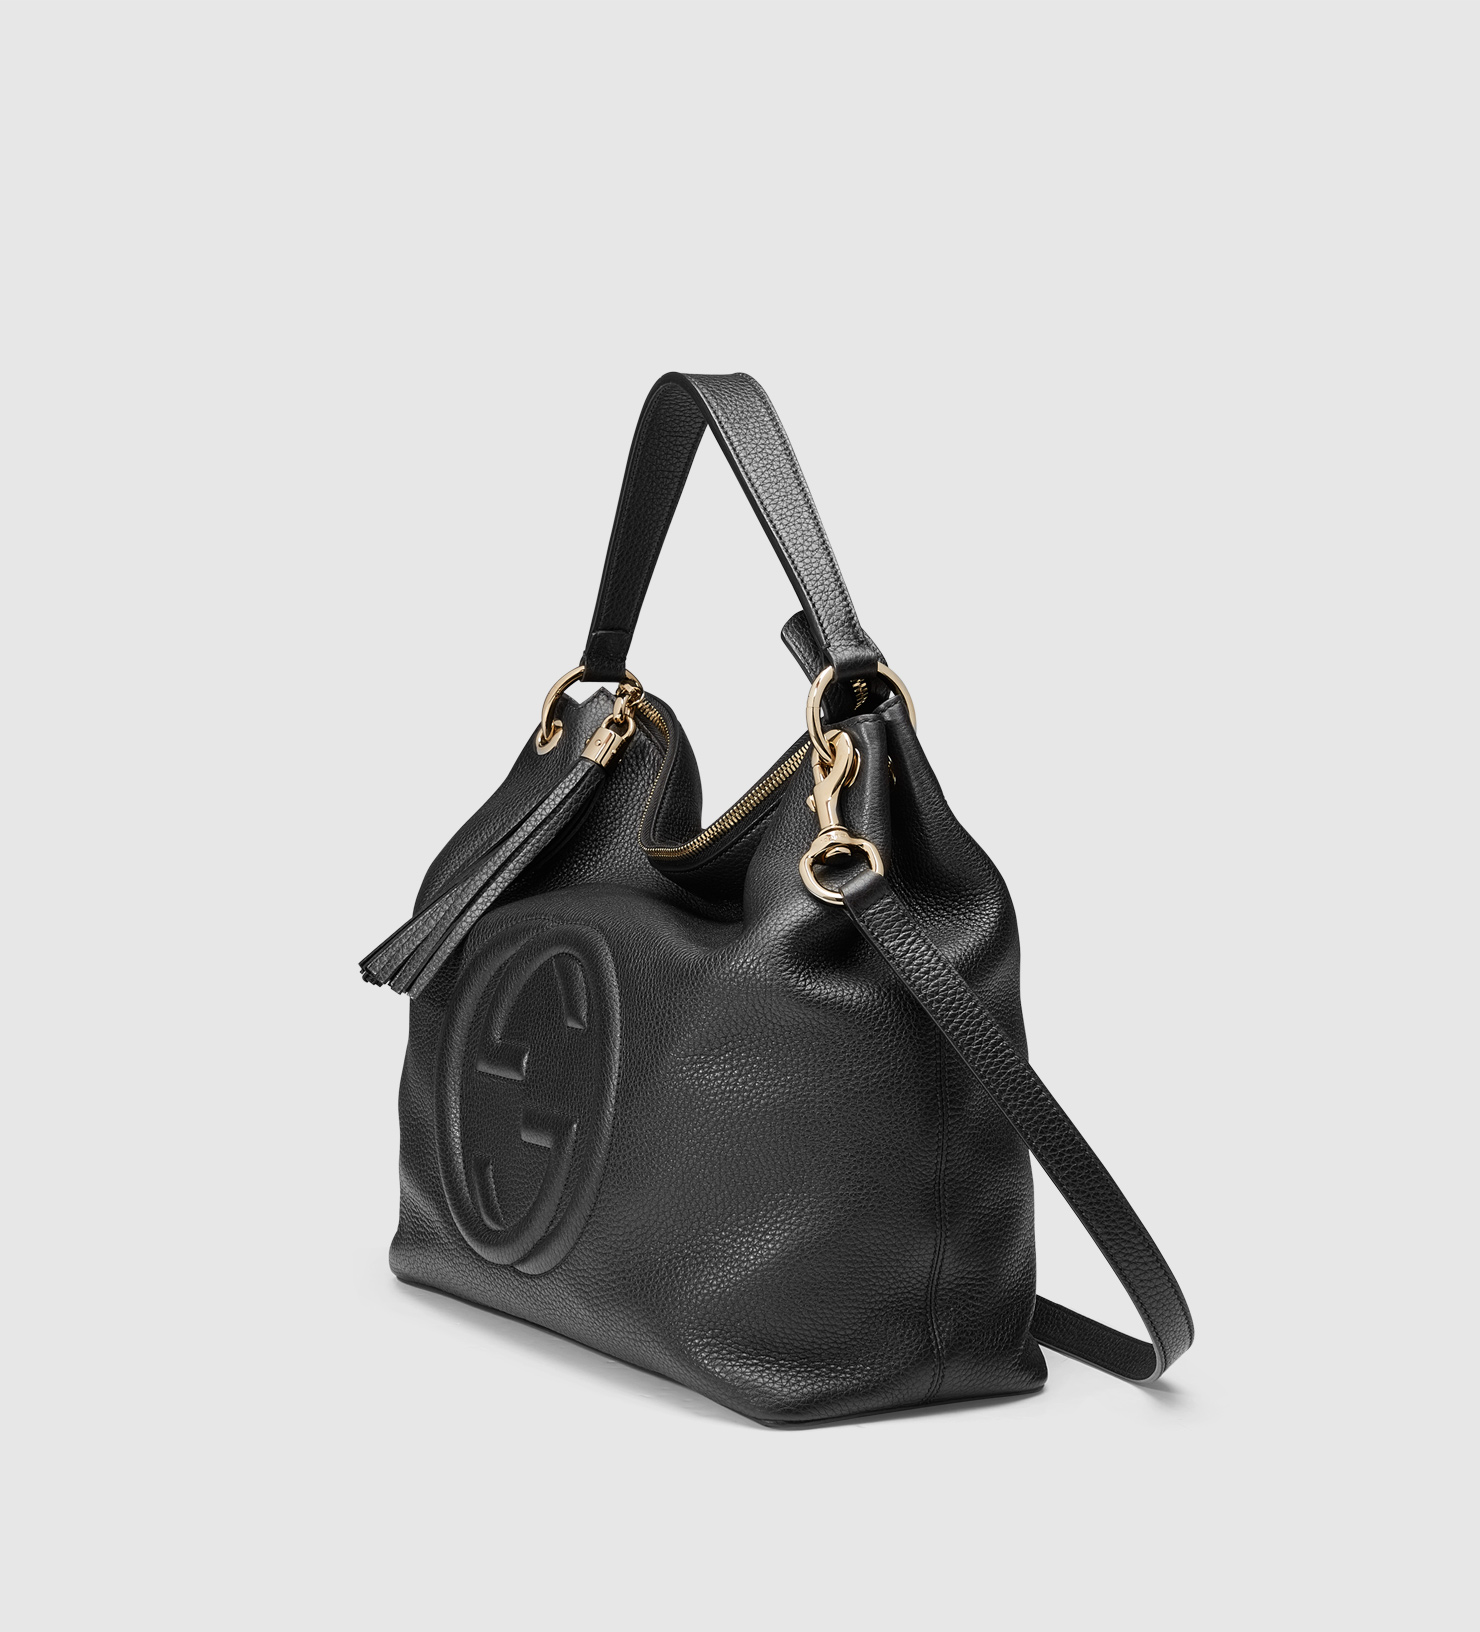 642f9191555e Lyst - Gucci Soho Leather Hobo in Black